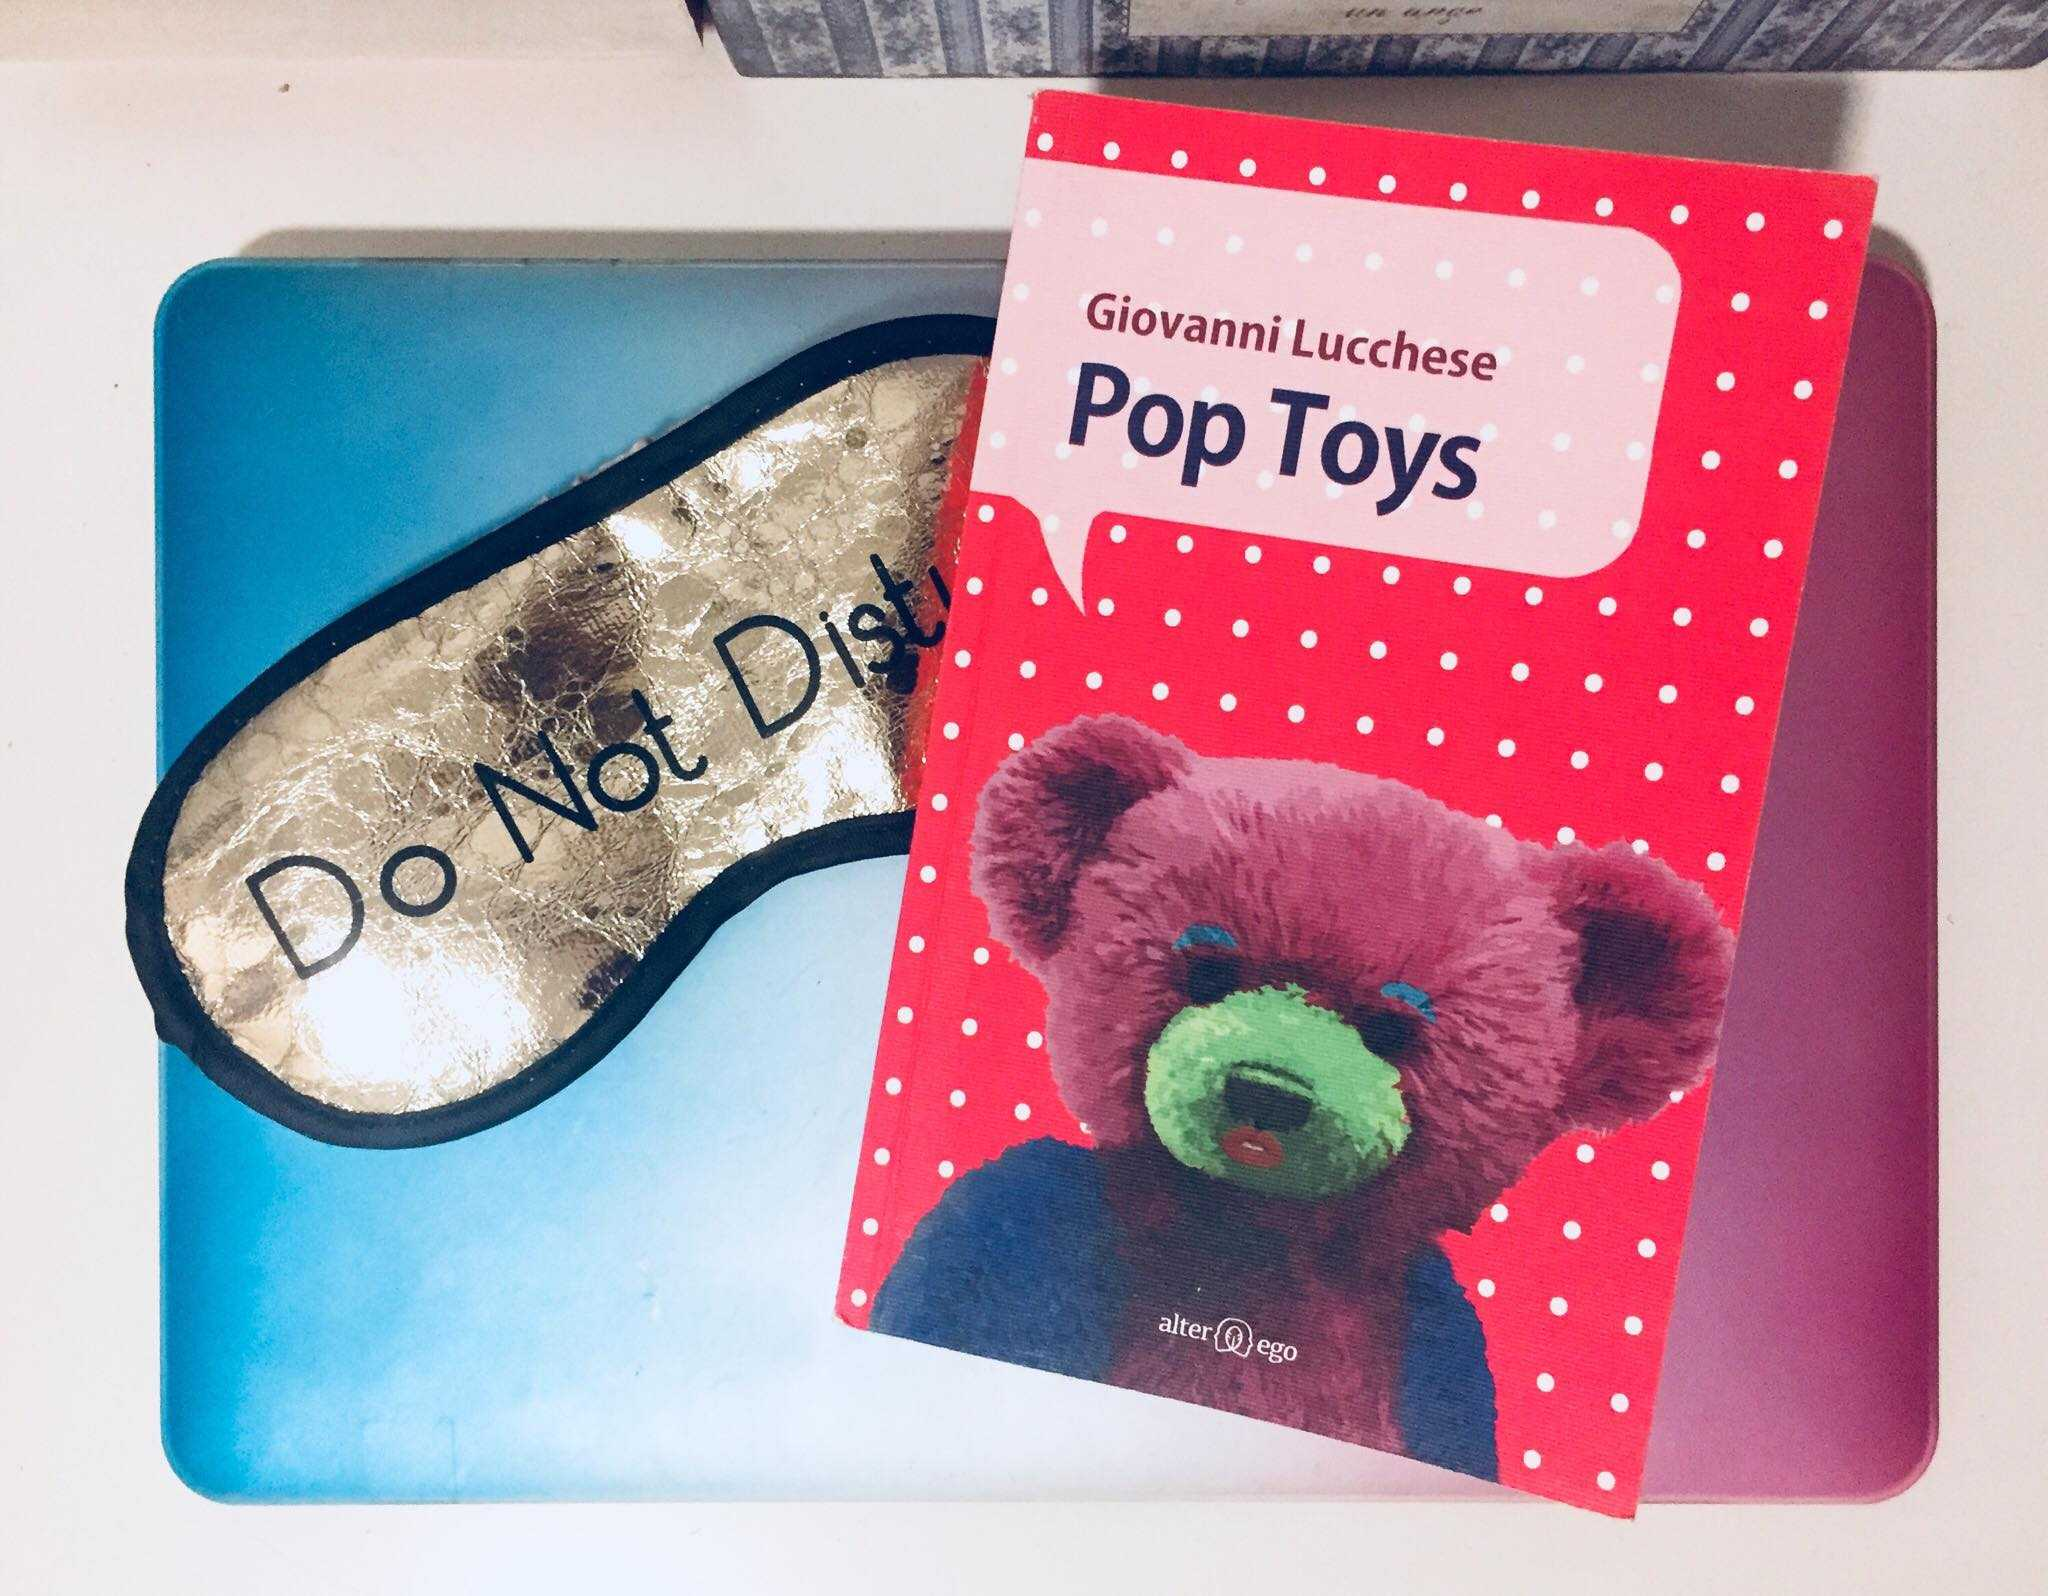 pop toys giovanni lucchese